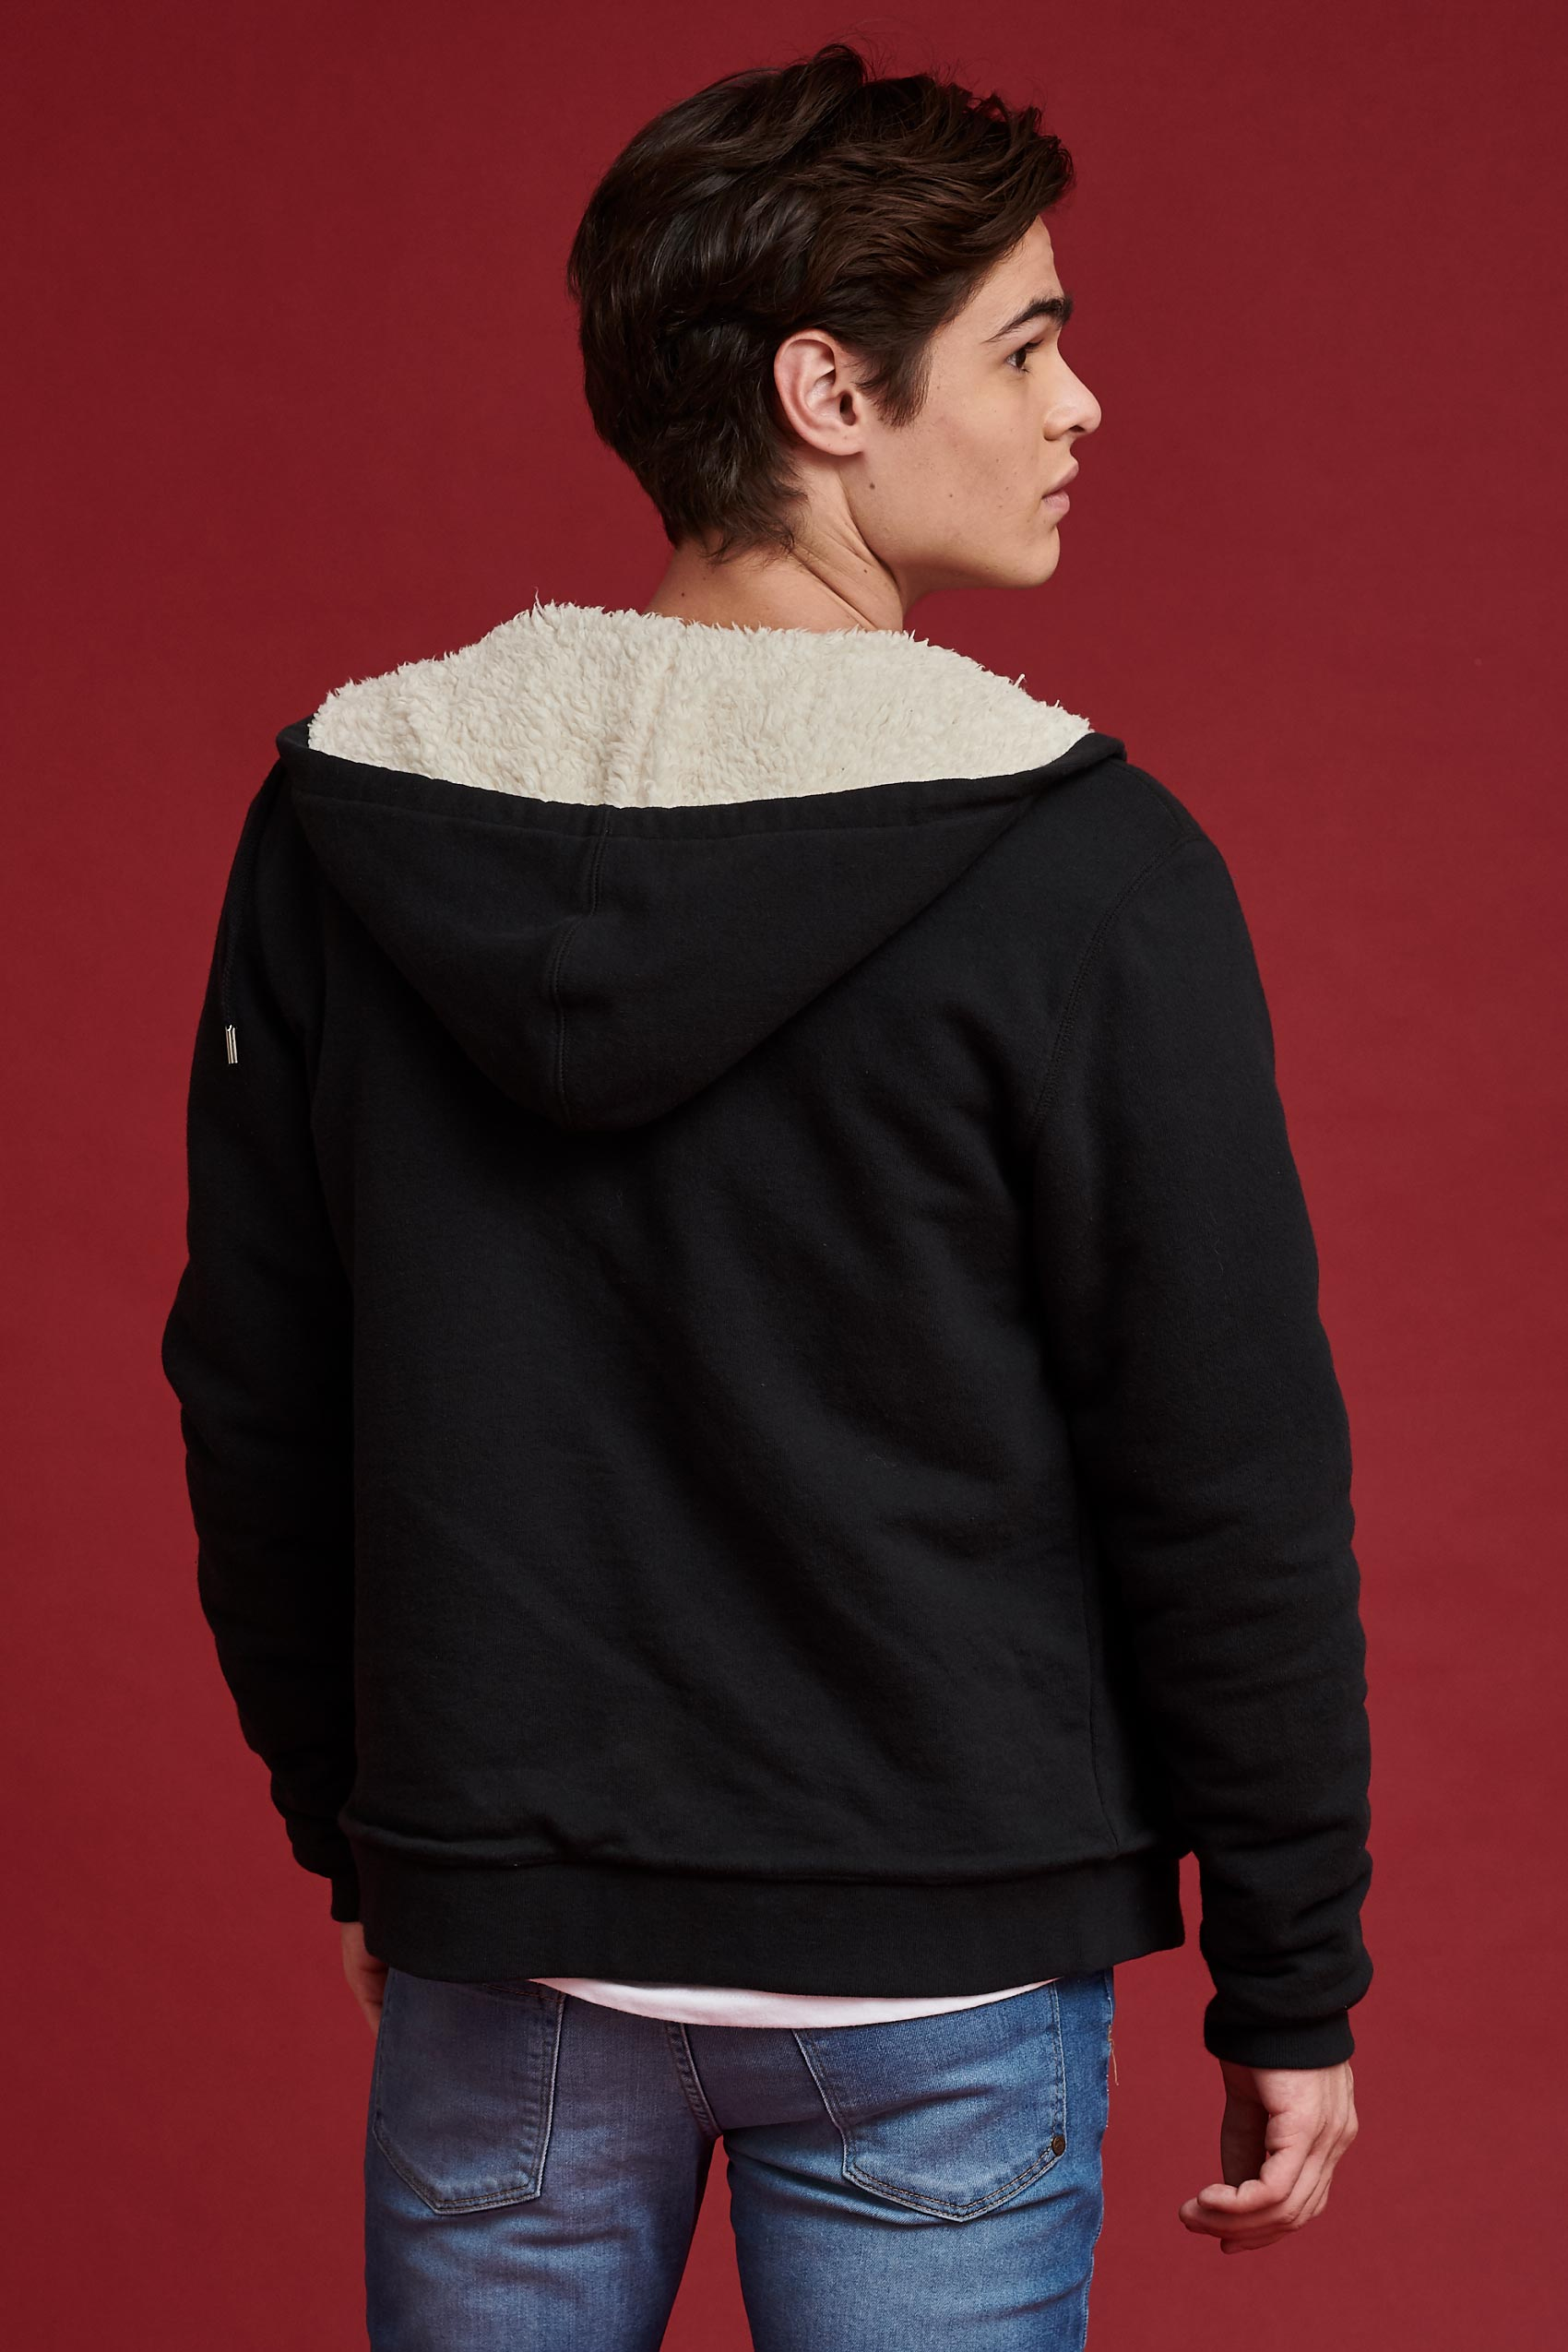 penguin_sherpa-lined-zip-hoodie_59-13-2020__picture-12932